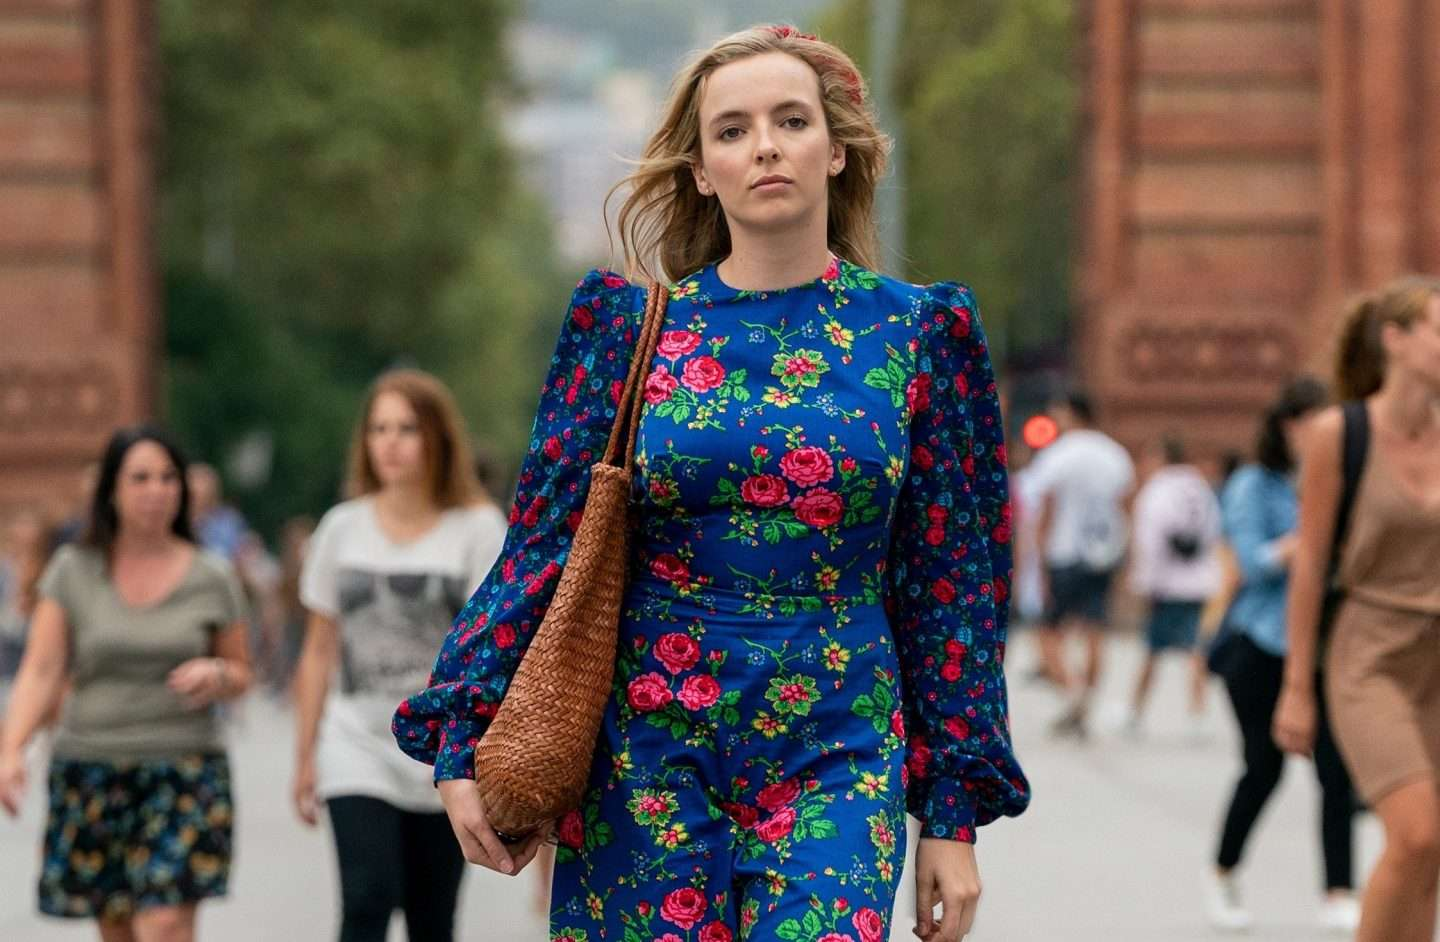 Jodie Comer in Killing Eve, wearing The Villanelle Dress